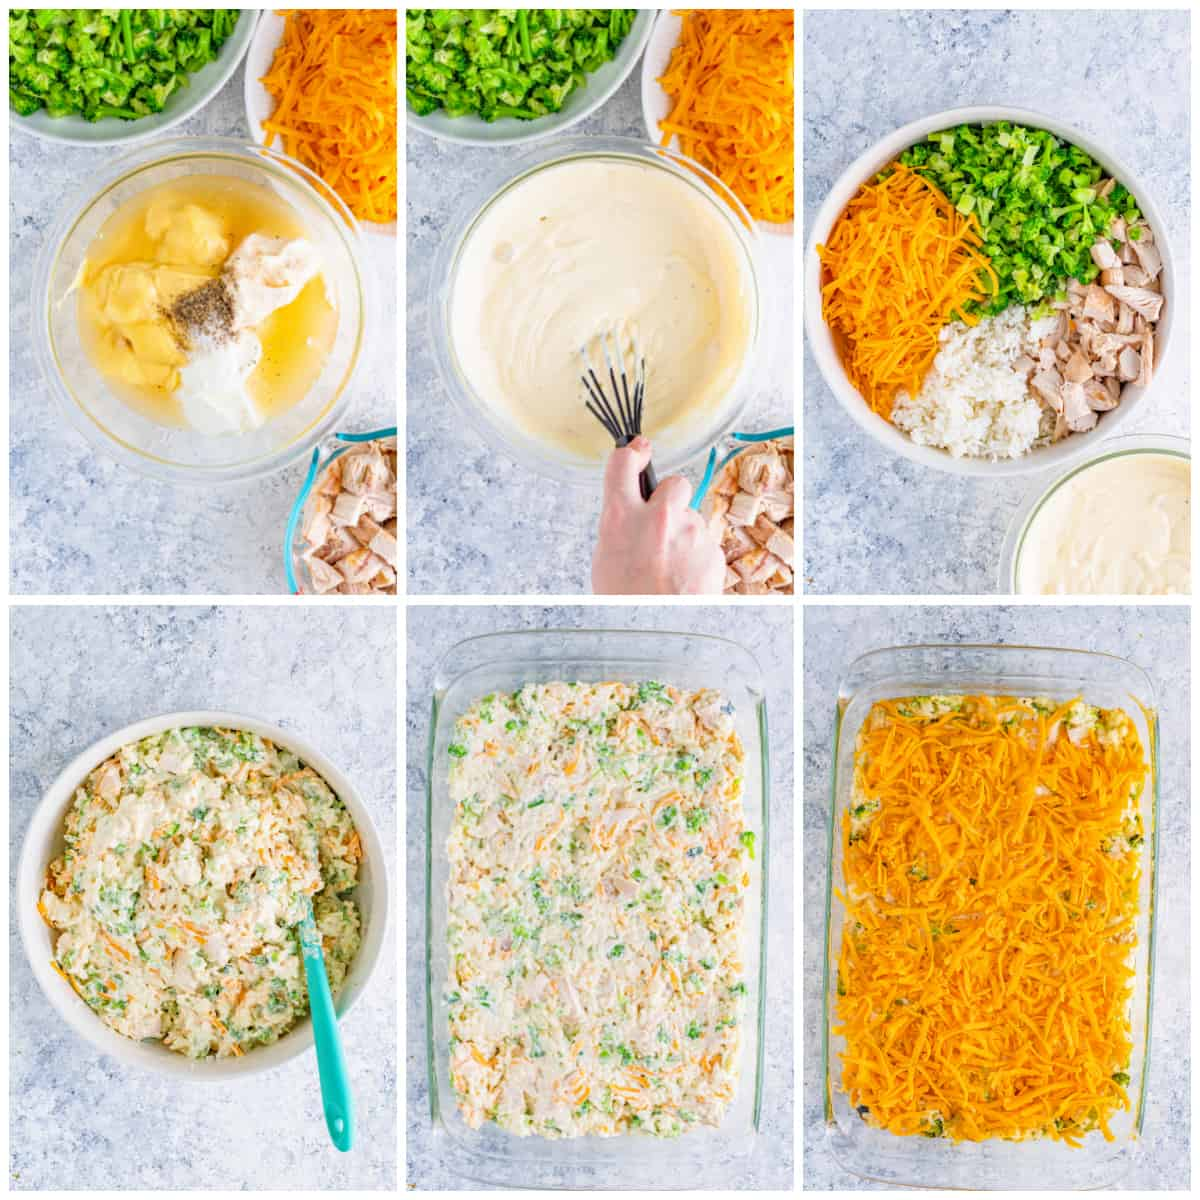 Step by step photos on how to make Chicken Broccoli Rice Casserole.